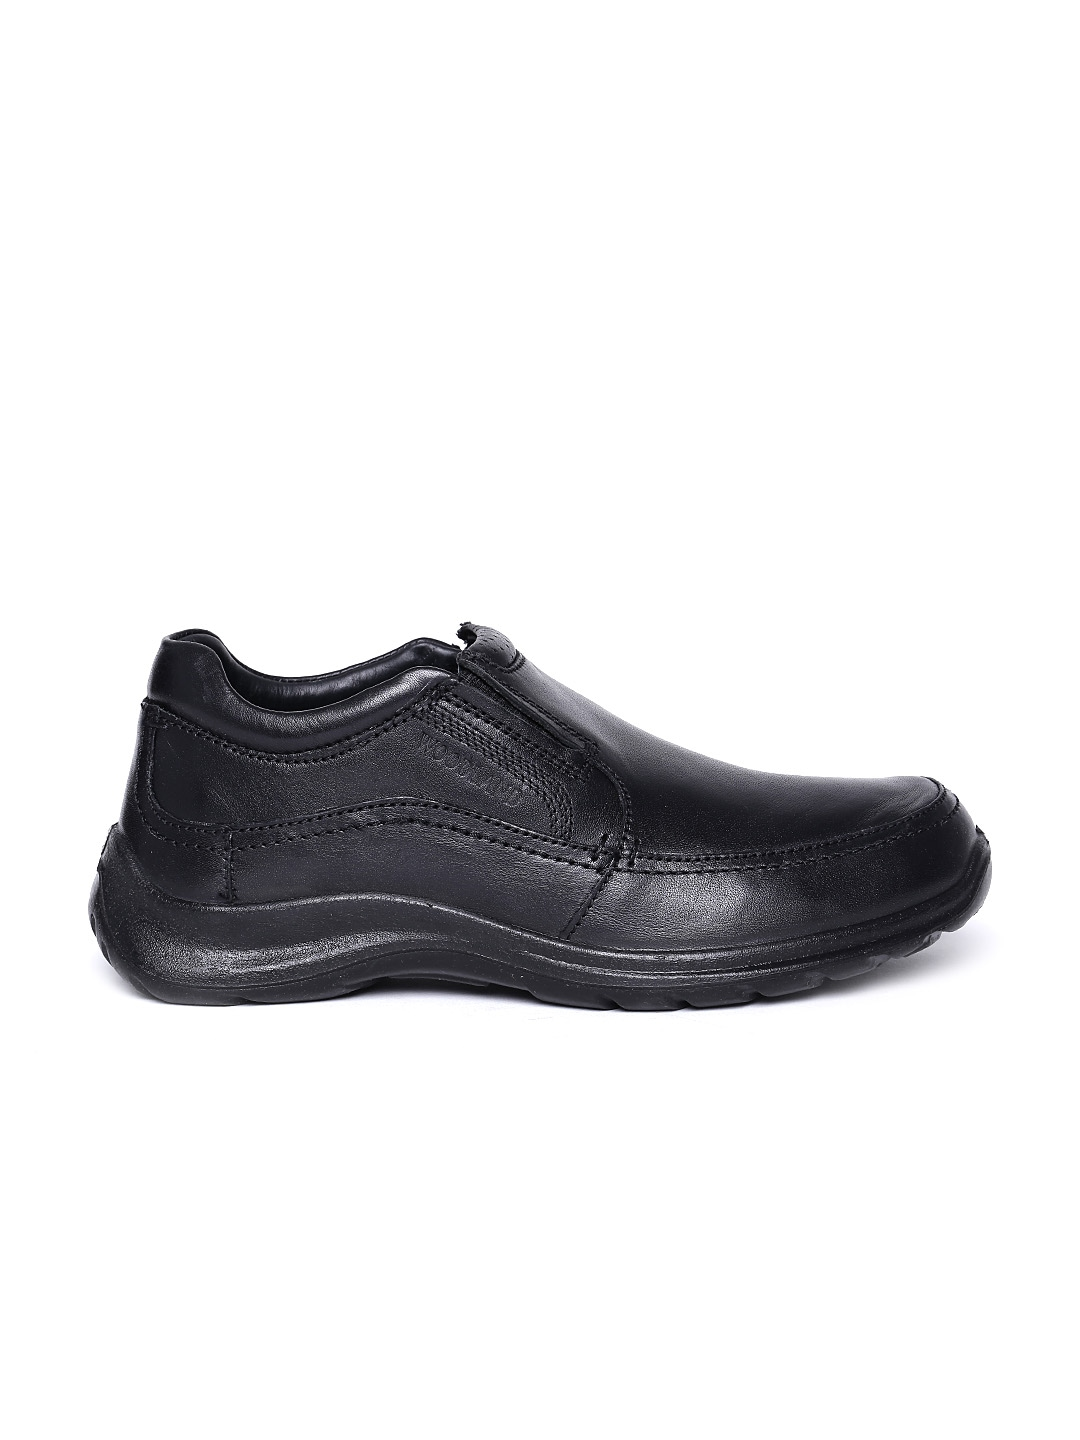 myntra woodland black leather casual shoes 563752